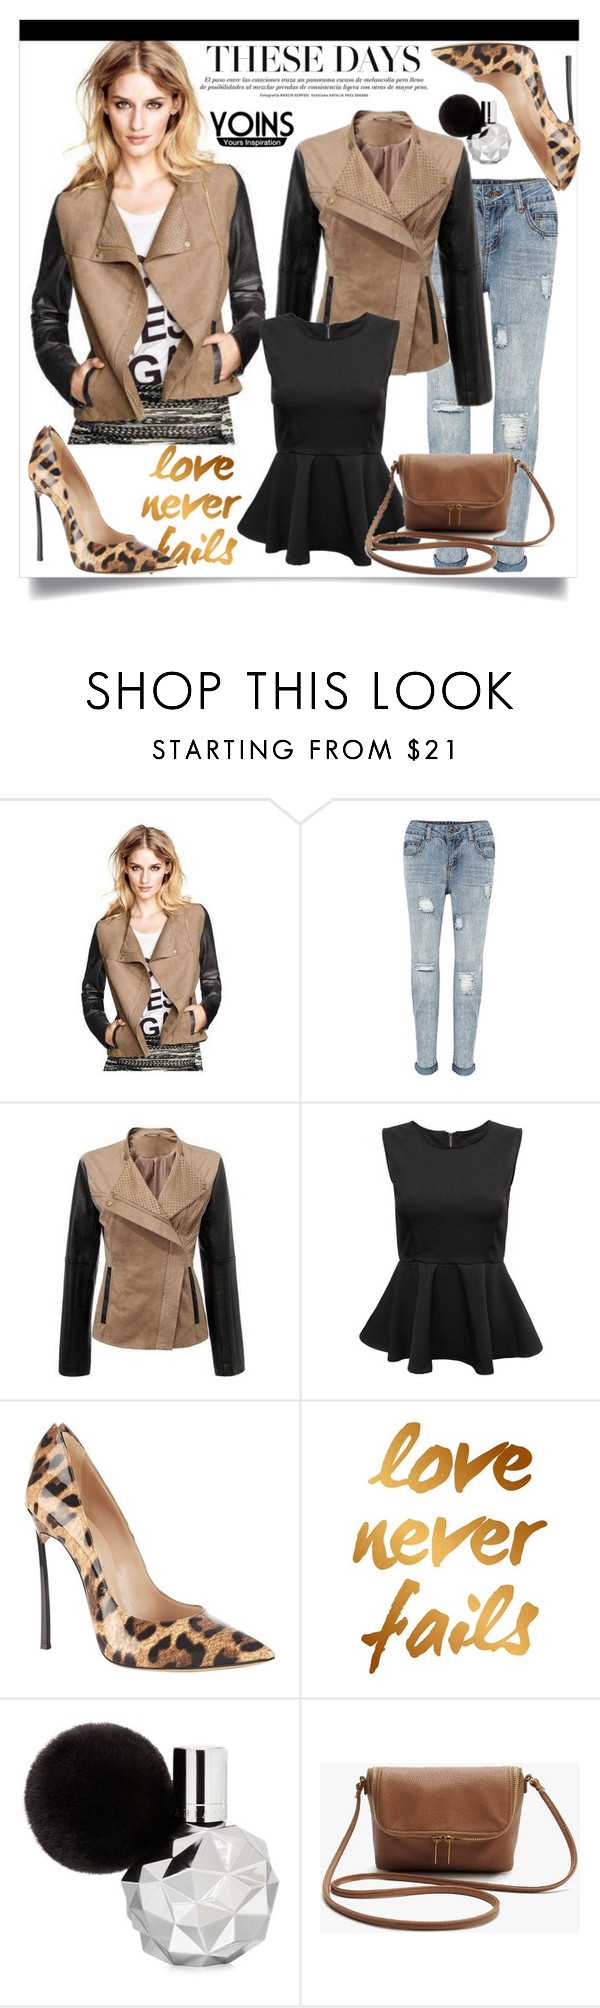 """""""yoins #7/2"""" by almedina-86 ❤ liked on Polyvore featuring Casadei and yoins"""